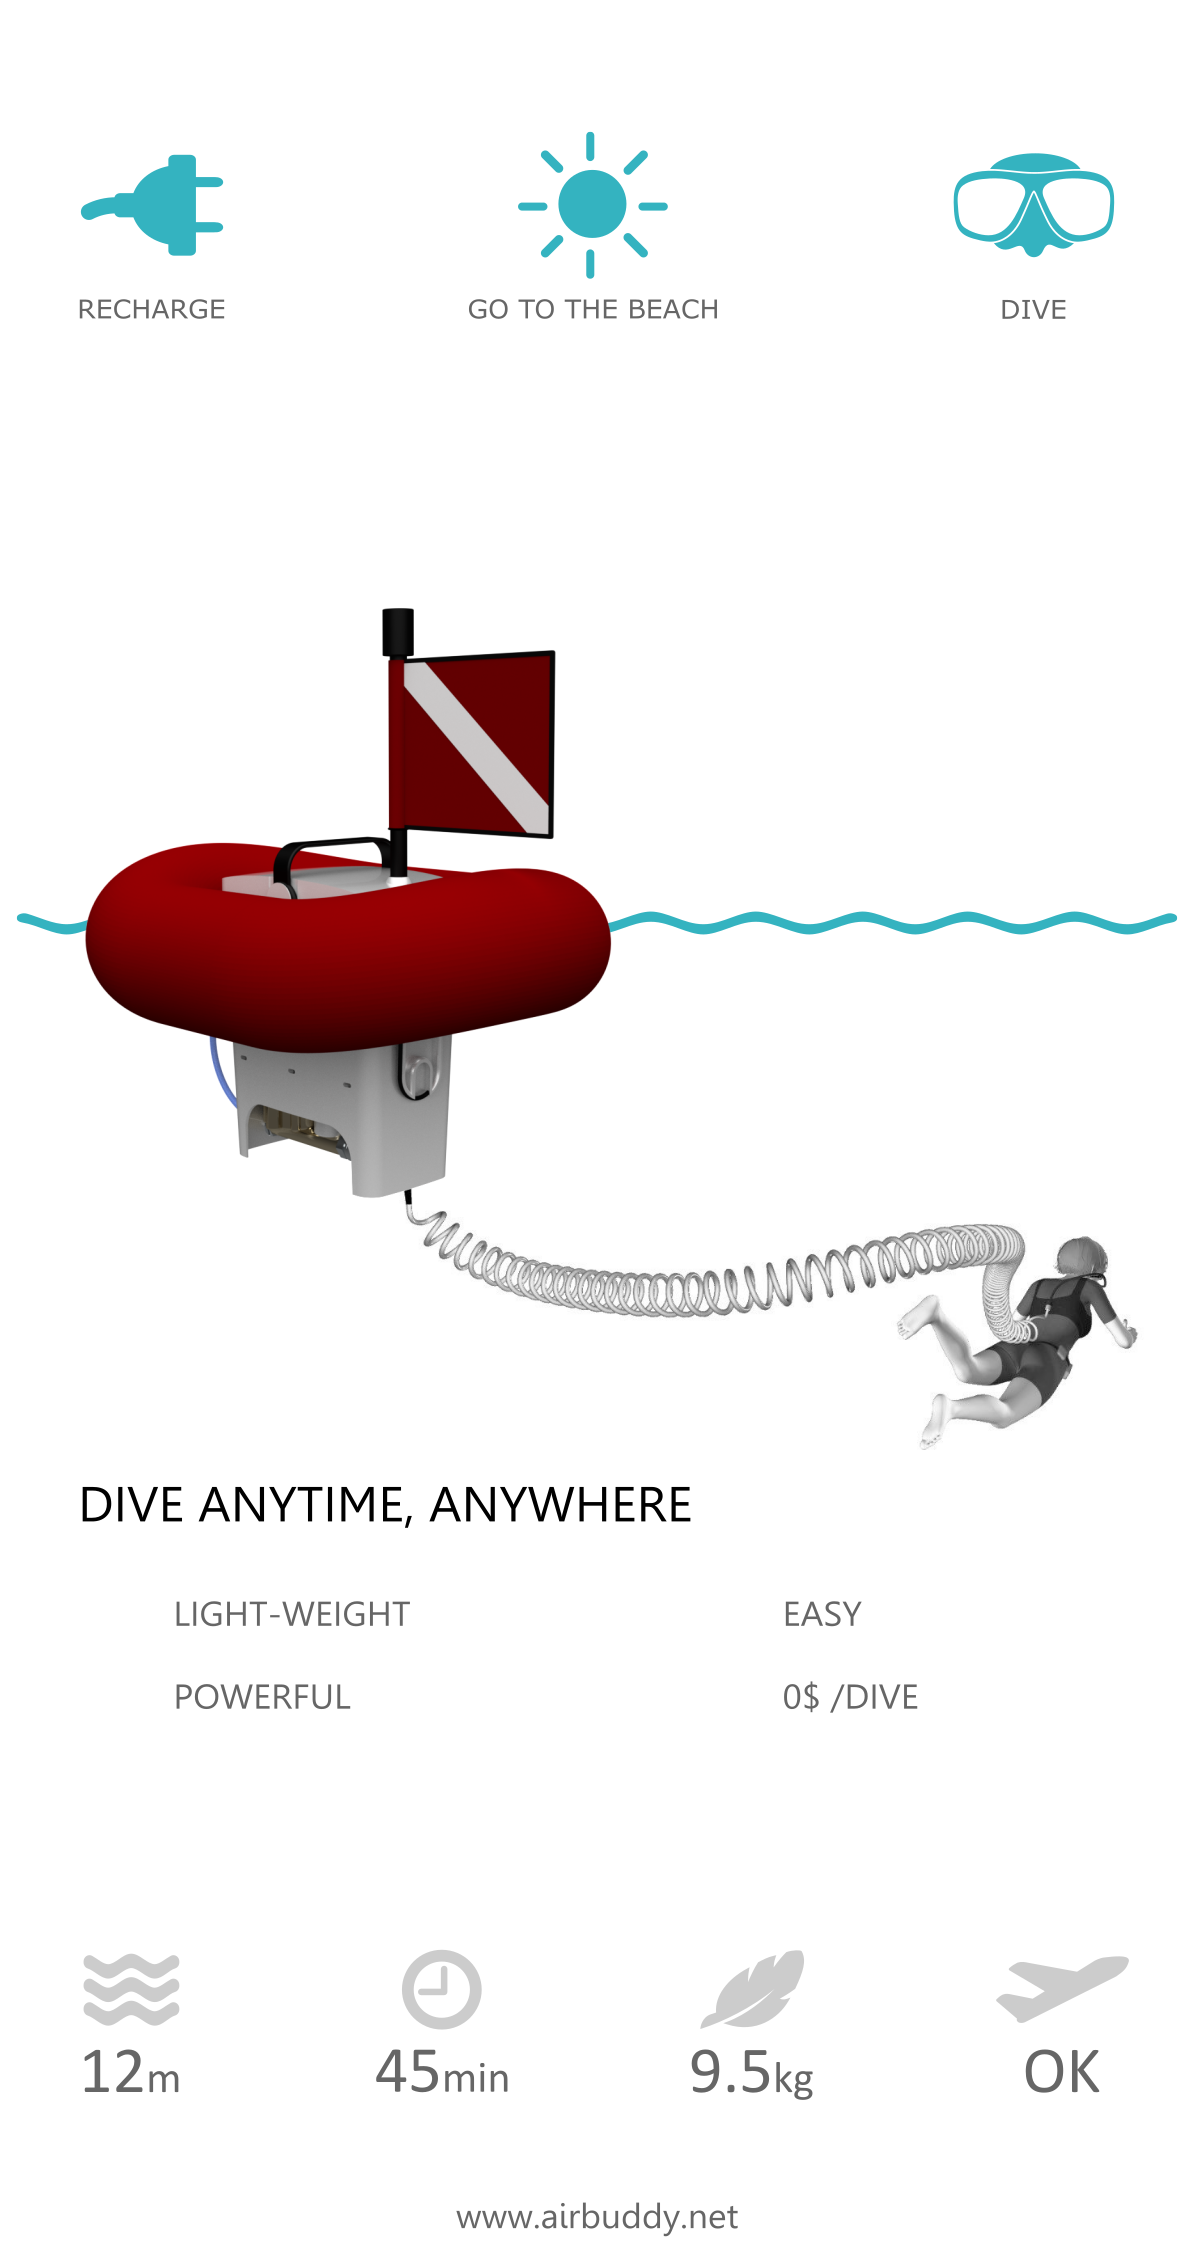 Air Buddy Diving : buddy, diving, Shallow, Water, Diving, AirBuddy., AirBuddy, Electric,, Surface, Supplied, Equipment., Kno…, Gear,, Scuba, Tank,